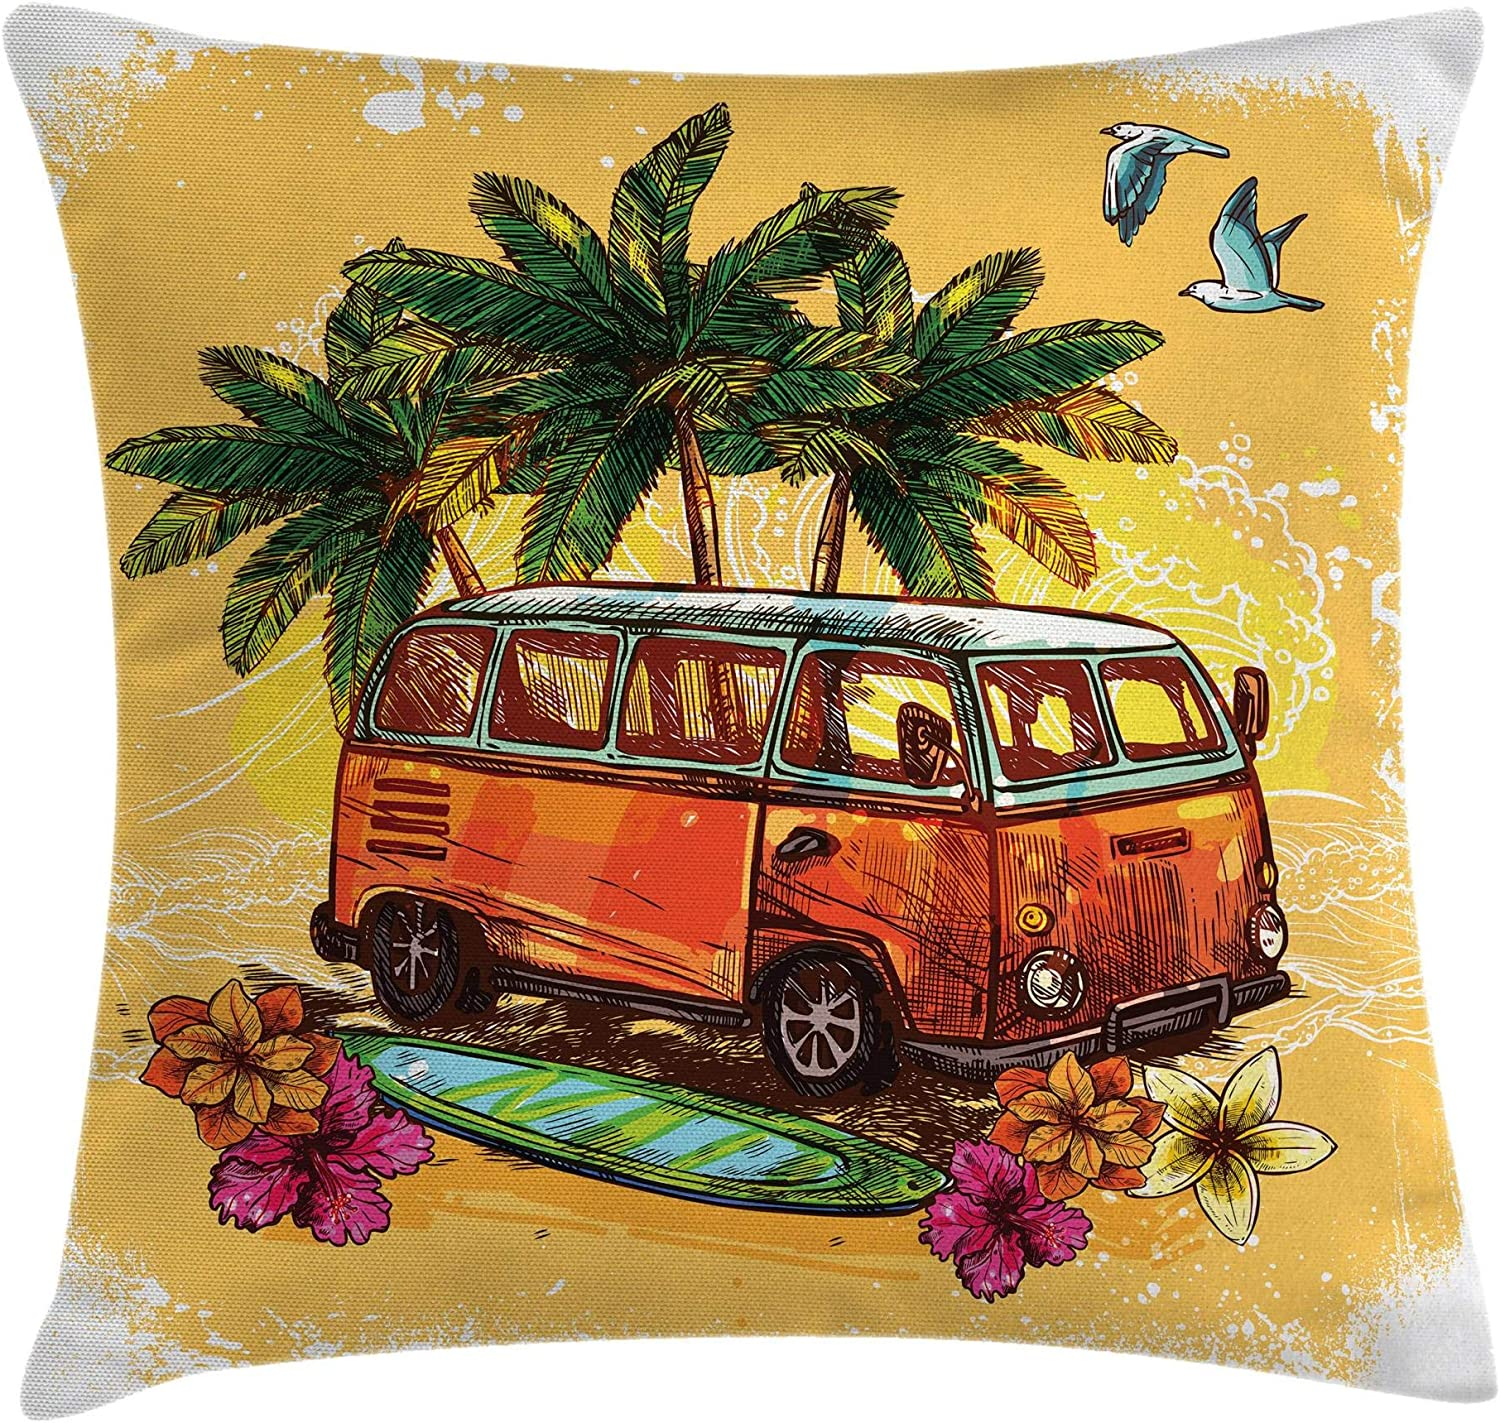 Ambesonne Surf Throw Pillow Cushion Cover, Hippie Classic Old Bus with Surfboard Freedom Holiday Exotic Life Sketchy Art, Decorative Square Accent Pillow Case, 20